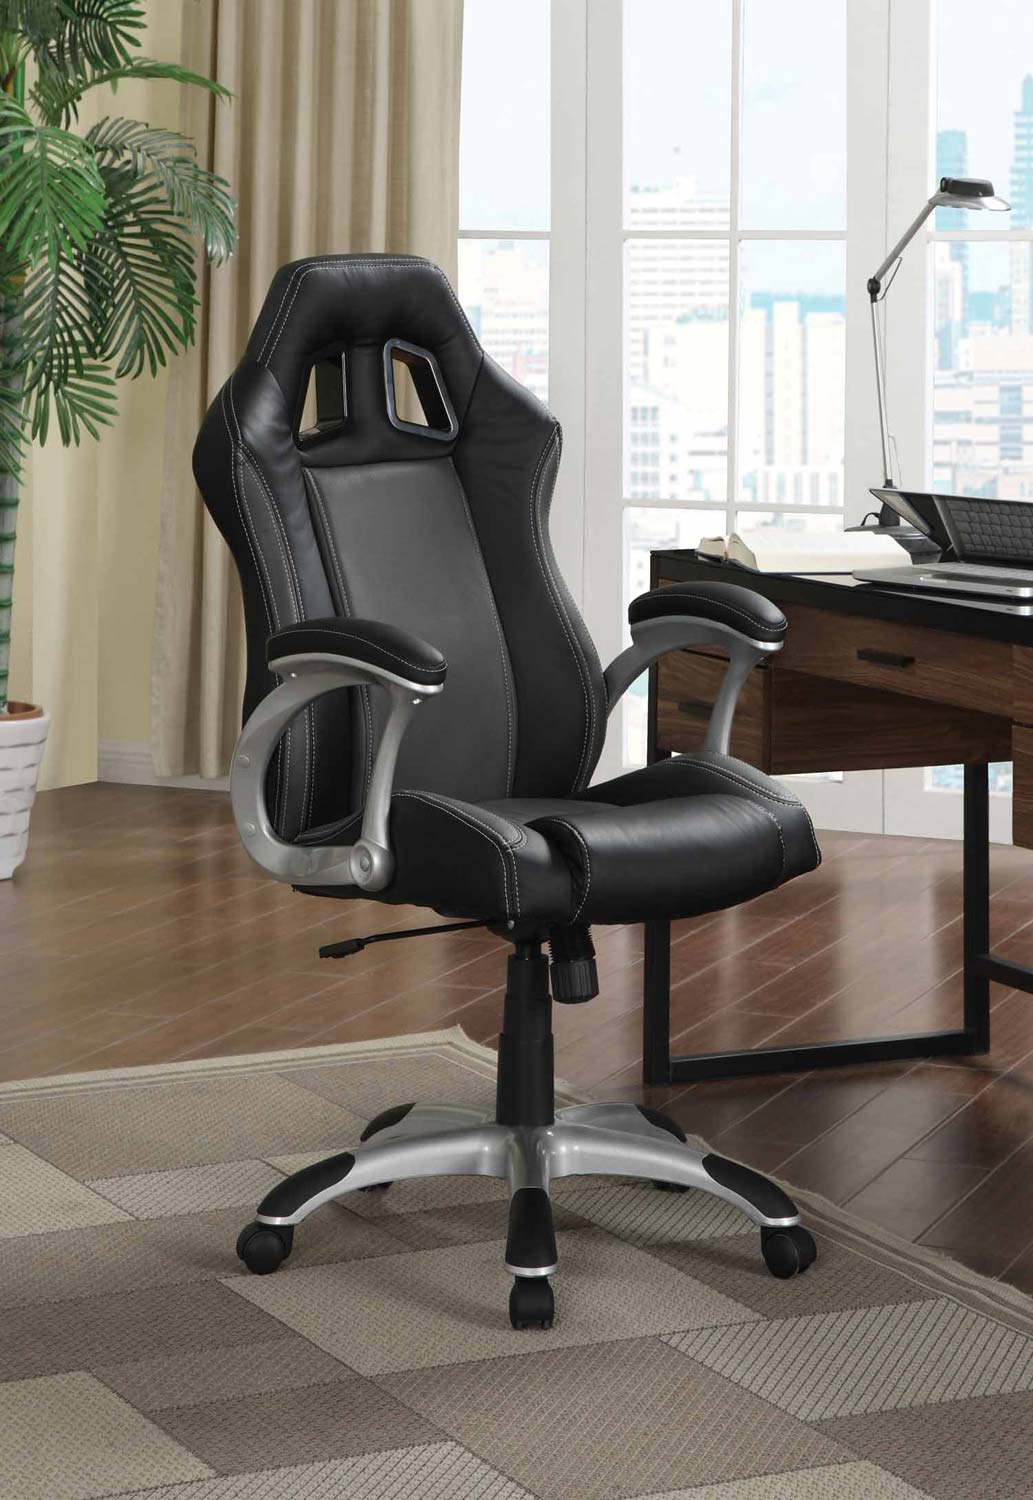 Coaster 800046 Office Chair - Black